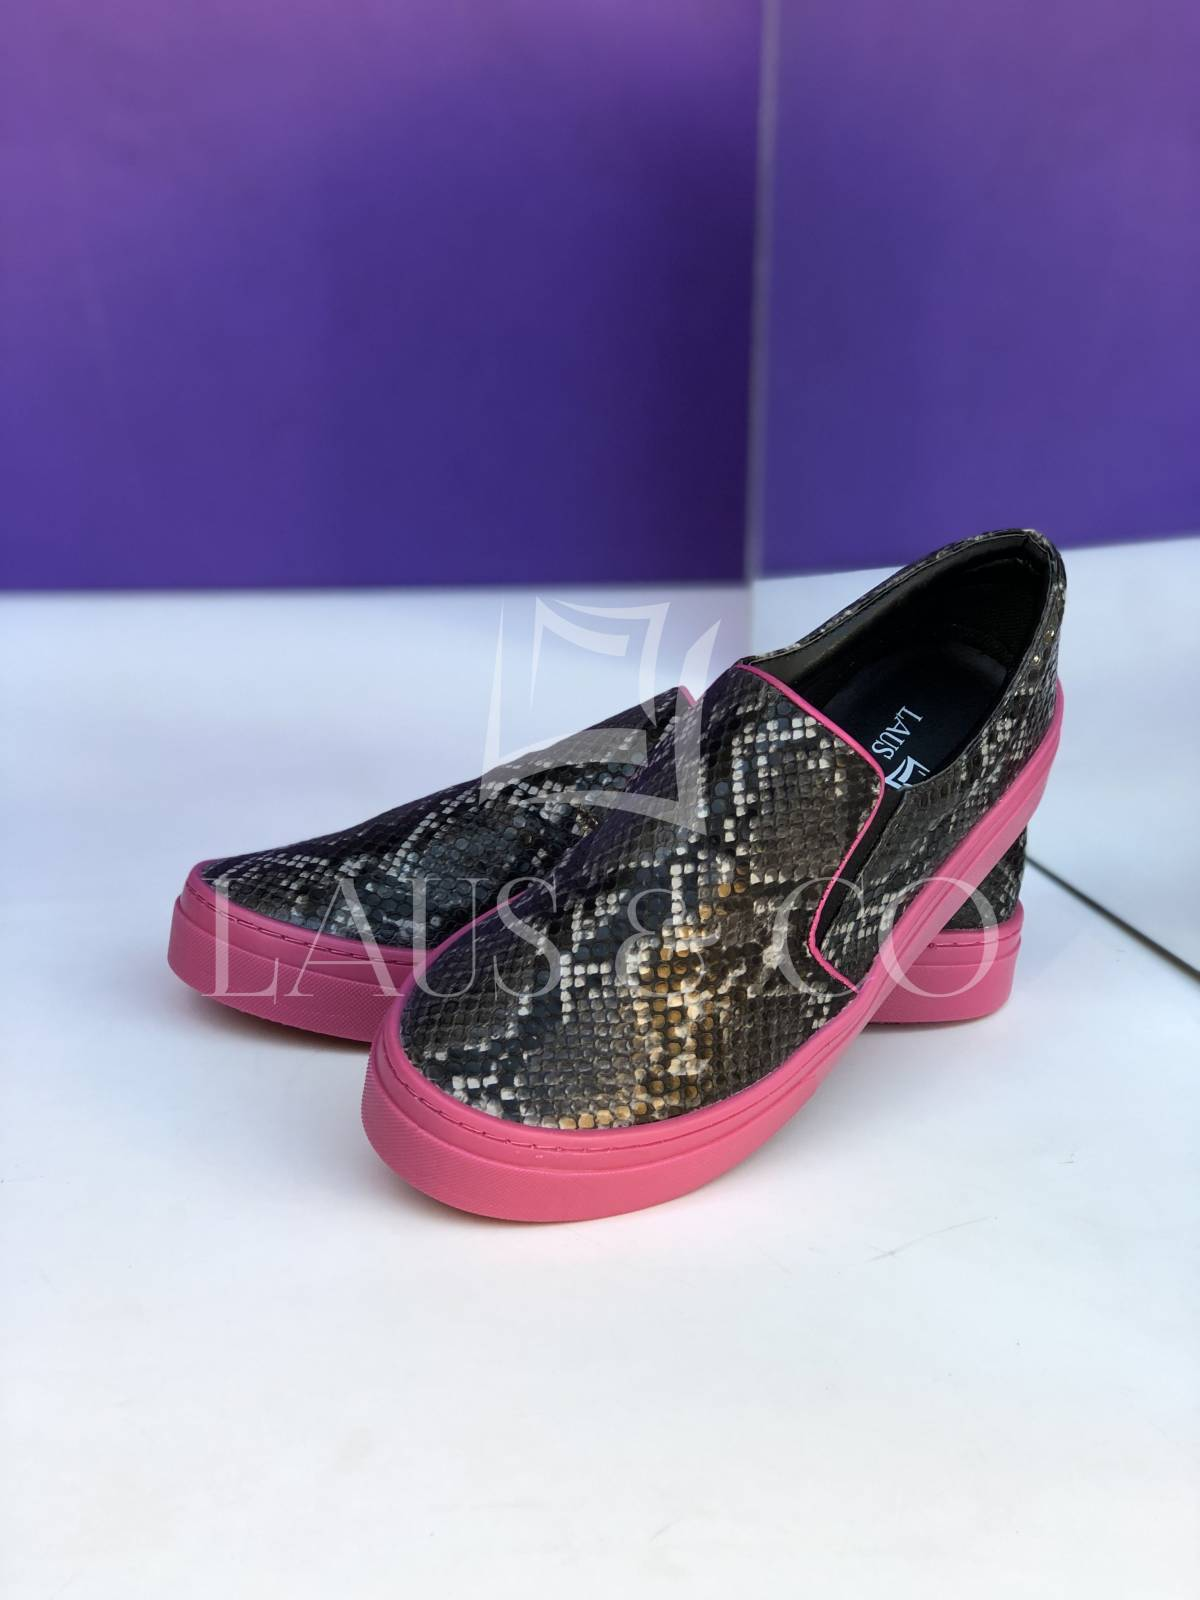 SlipOn Píton Solado Pink  - LAUS & CO